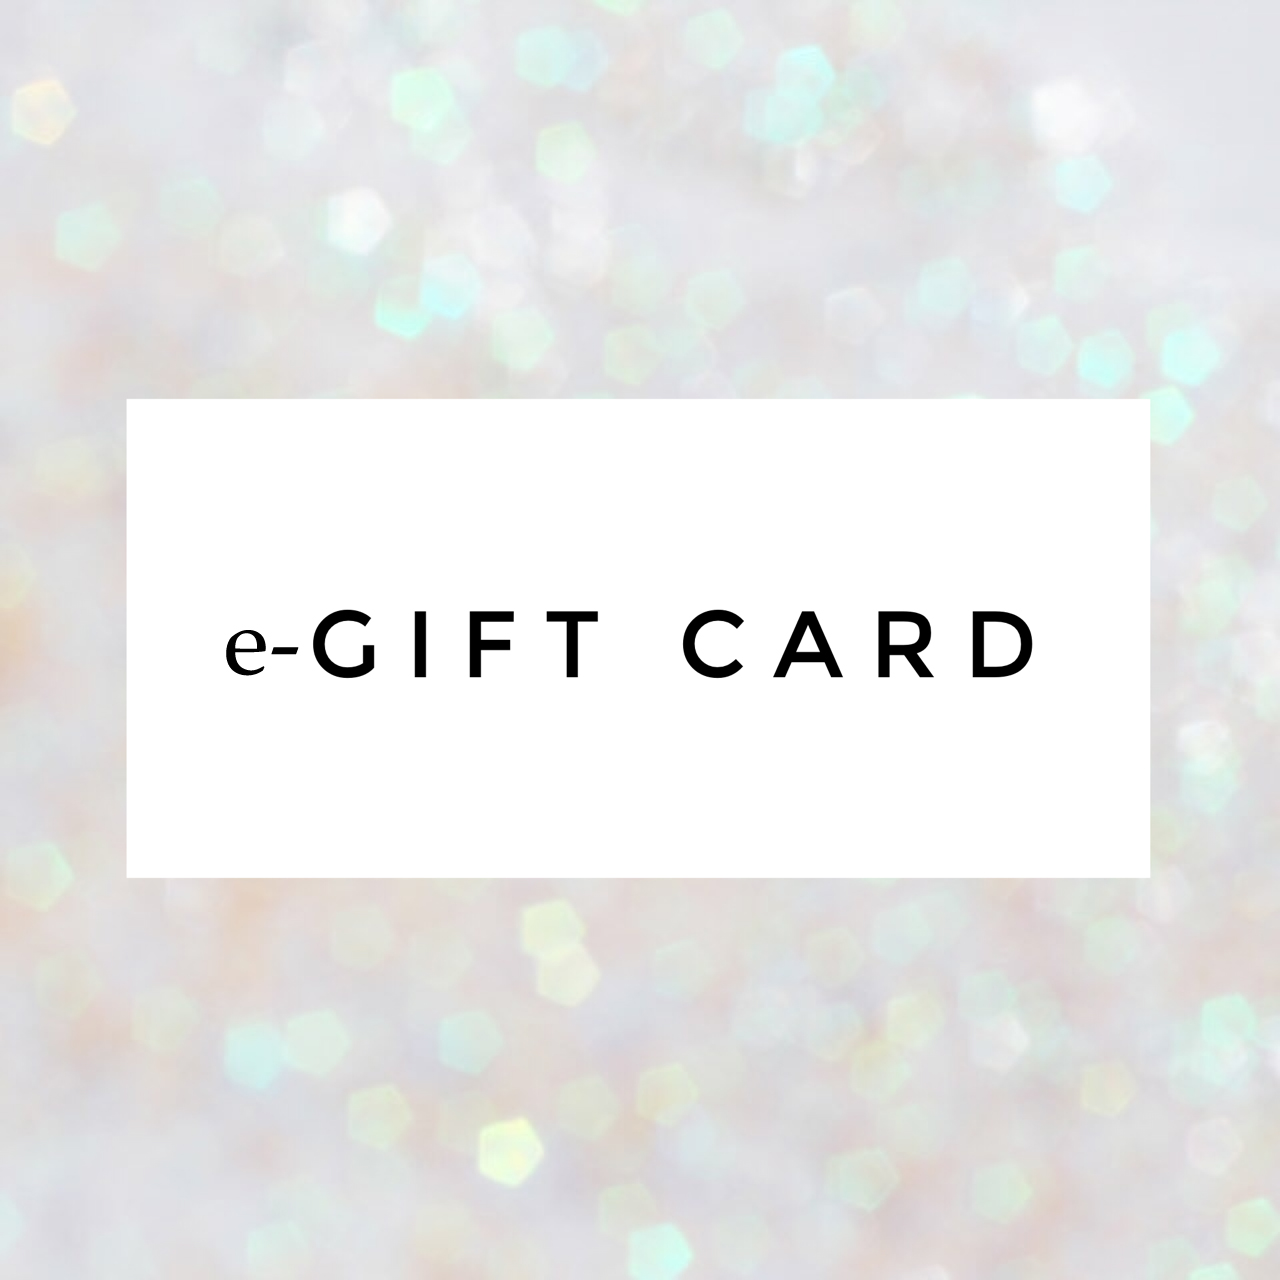 It's never too late to send one of our e-Gift cards.Perfect for last minute shopping, they can be sent at anytime of day, anywhere in the world! With our e-Gift card, you have the option of sending the voucher directly to that someone special or you can print it yourself and give it in person - done and dusted in a matter of minutes :-)